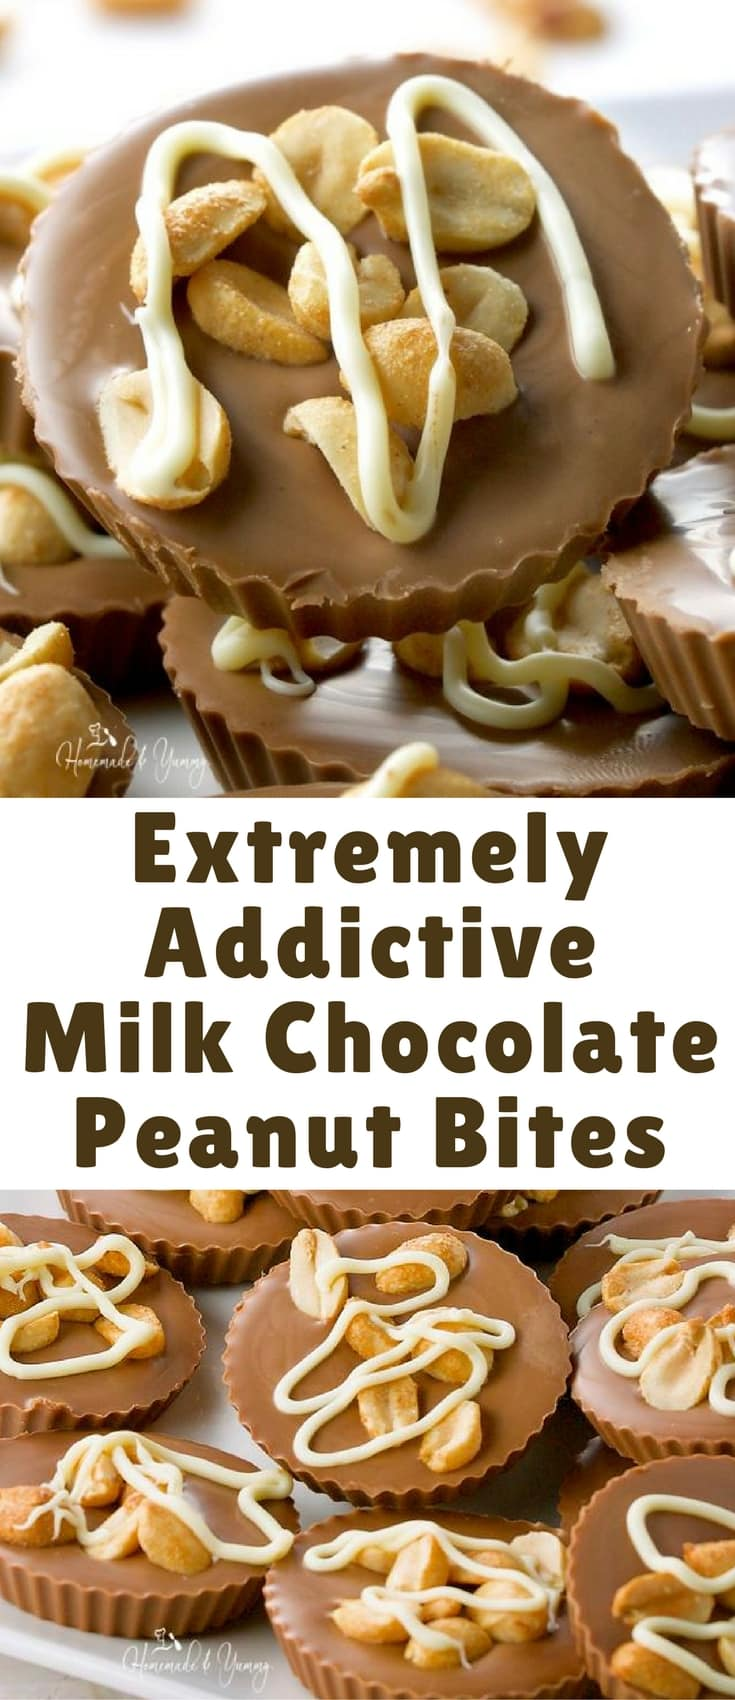 Extremely Addictive Milk Chocolate Peanut Bites are over the top delicious. Sweet, salty, creamy peanut butter flavoured chocolate. Perfect little bites of dreamy goodness. You will eat more than one.